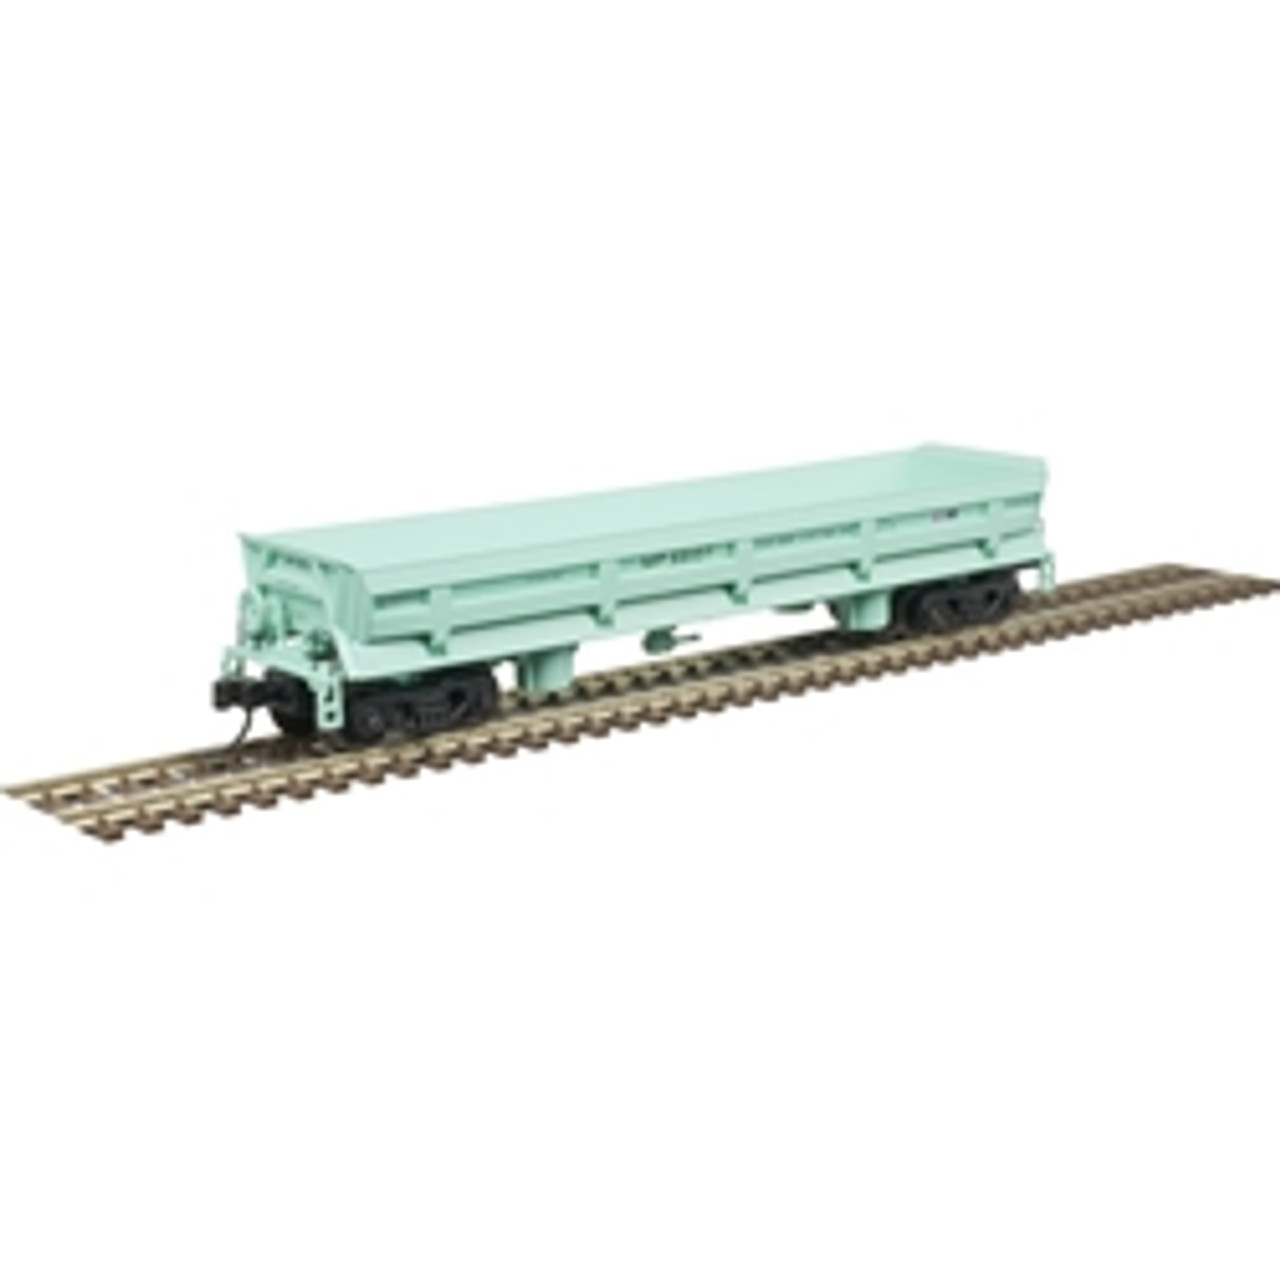 ATLAS 50004584 DIFCO Side Dump Car - MP - Missouri Pacific (UP Shield) #55107 (SCALE=N) Part # 150-50004584